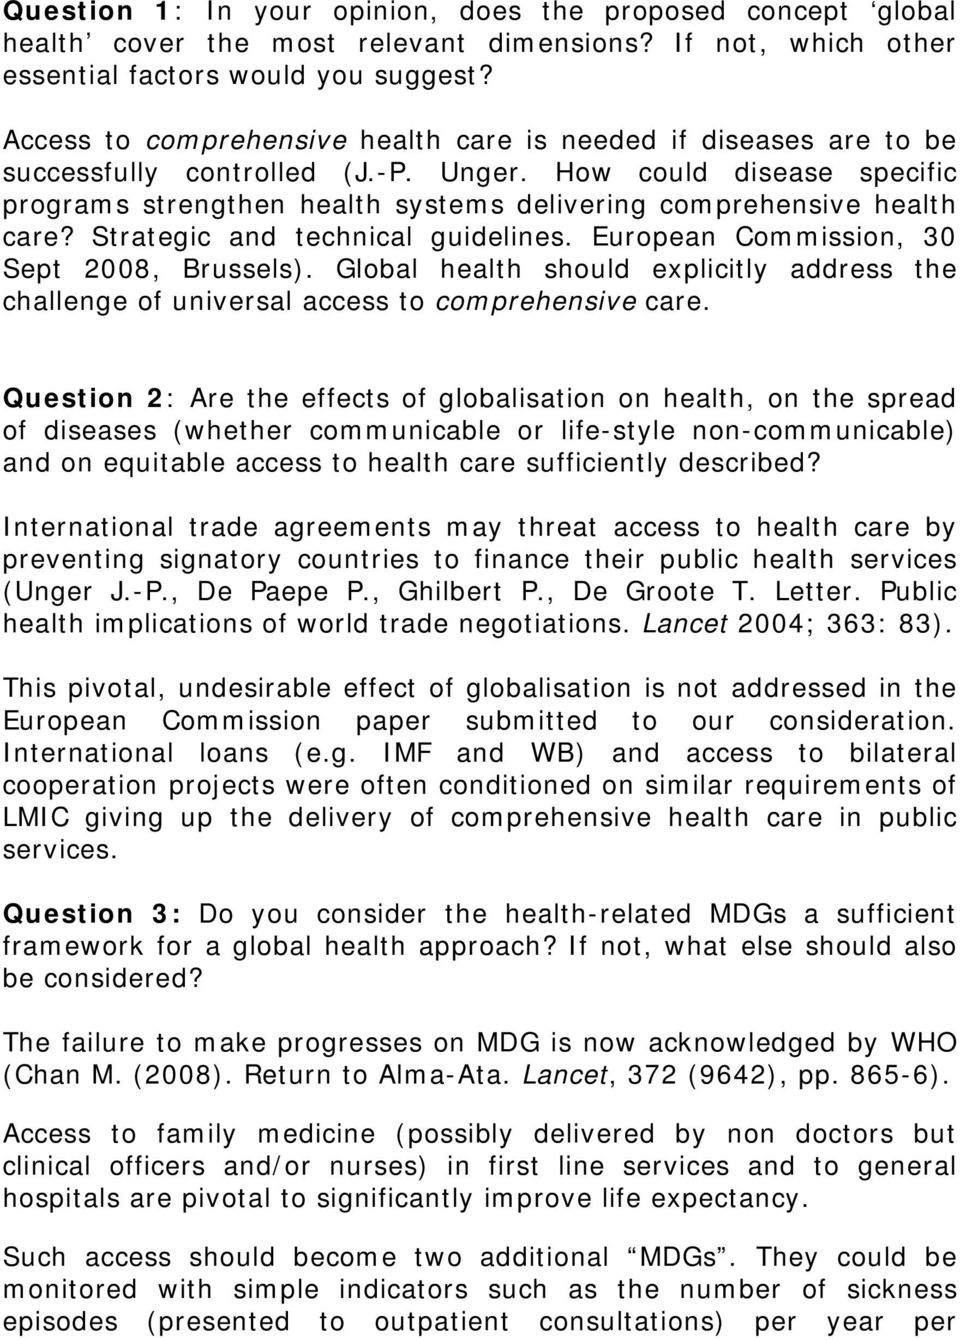 How could disease specific programs strengthen health systems delivering comprehensive health care? Strategic and technical guidelines. European Commission, 30 Sept 2008, Brussels).